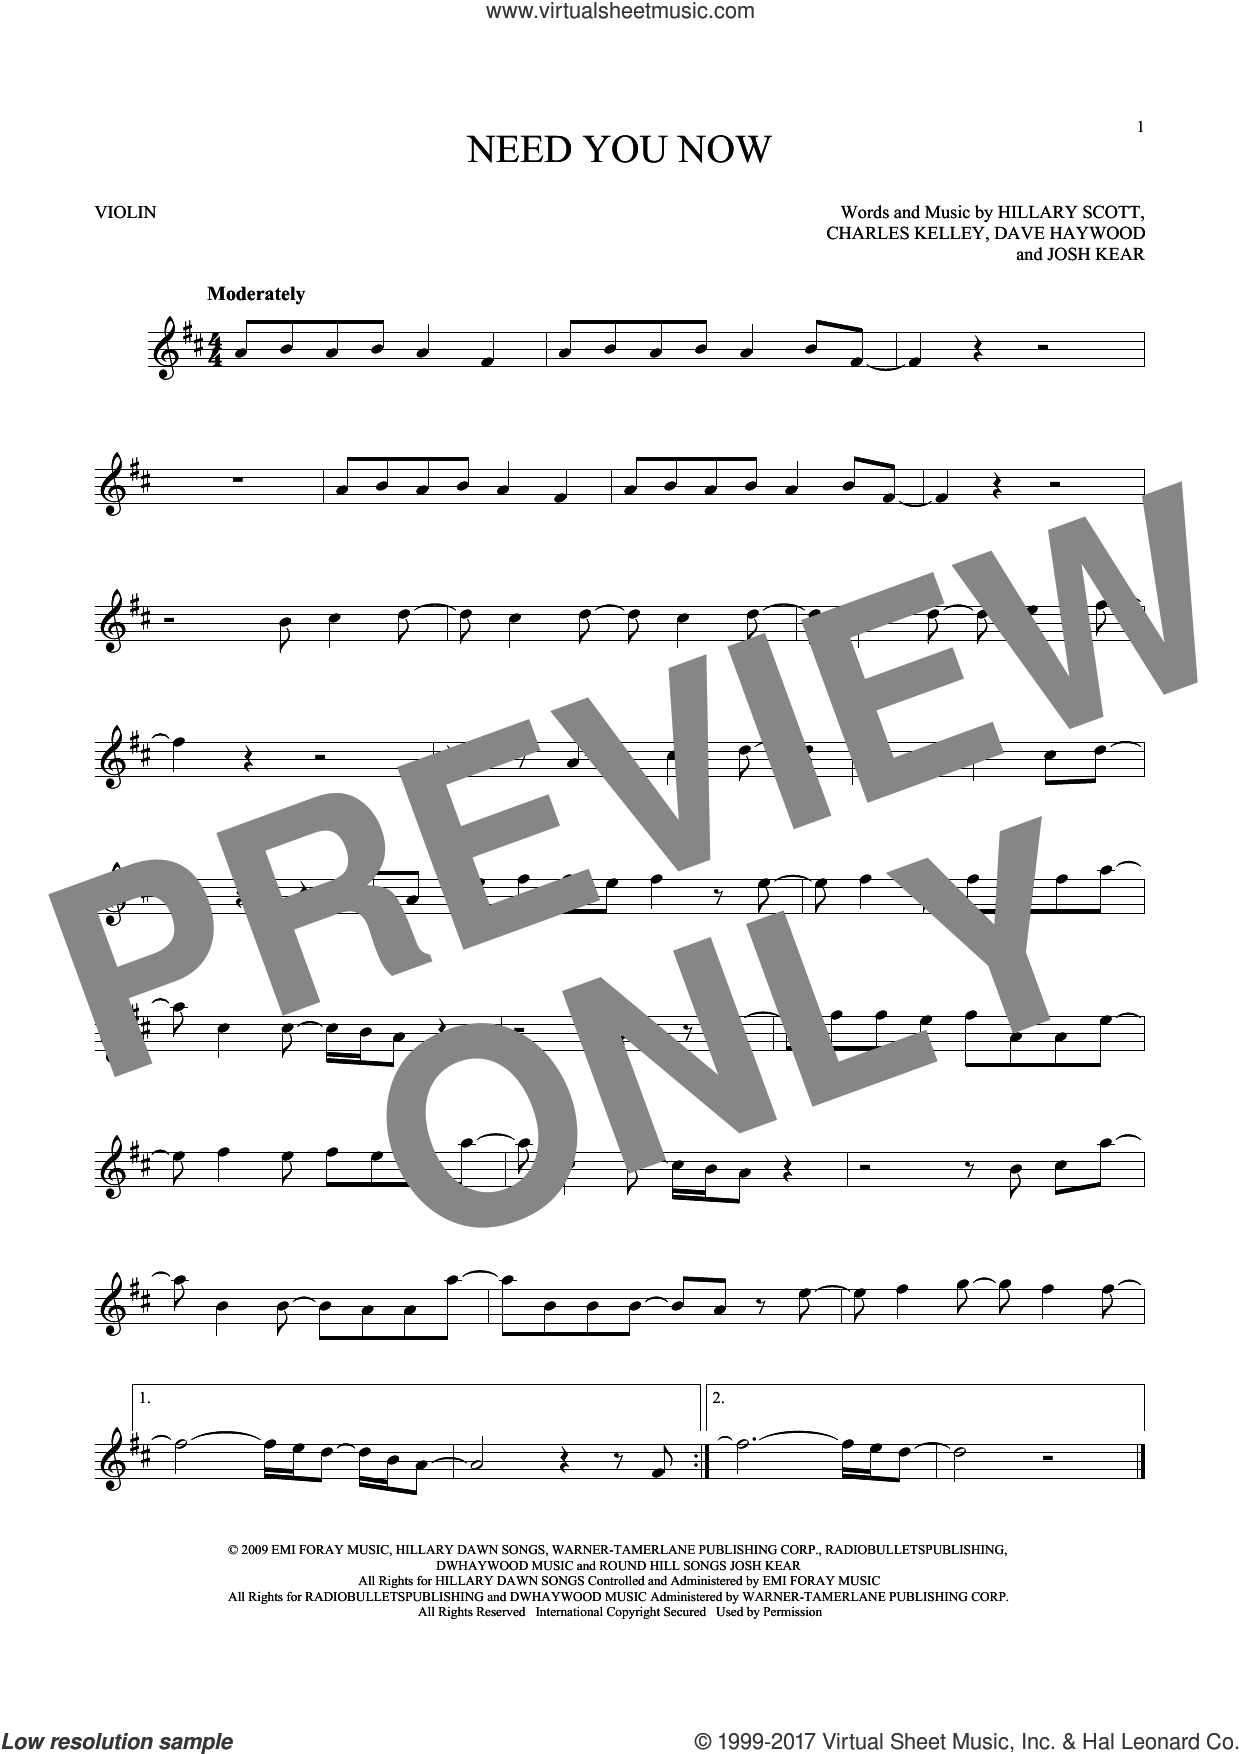 Need You Now sheet music for violin solo by Lady Antebellum, Charles Kelley, Dave Haywood, Hillary Scott and Josh Kear, intermediate skill level